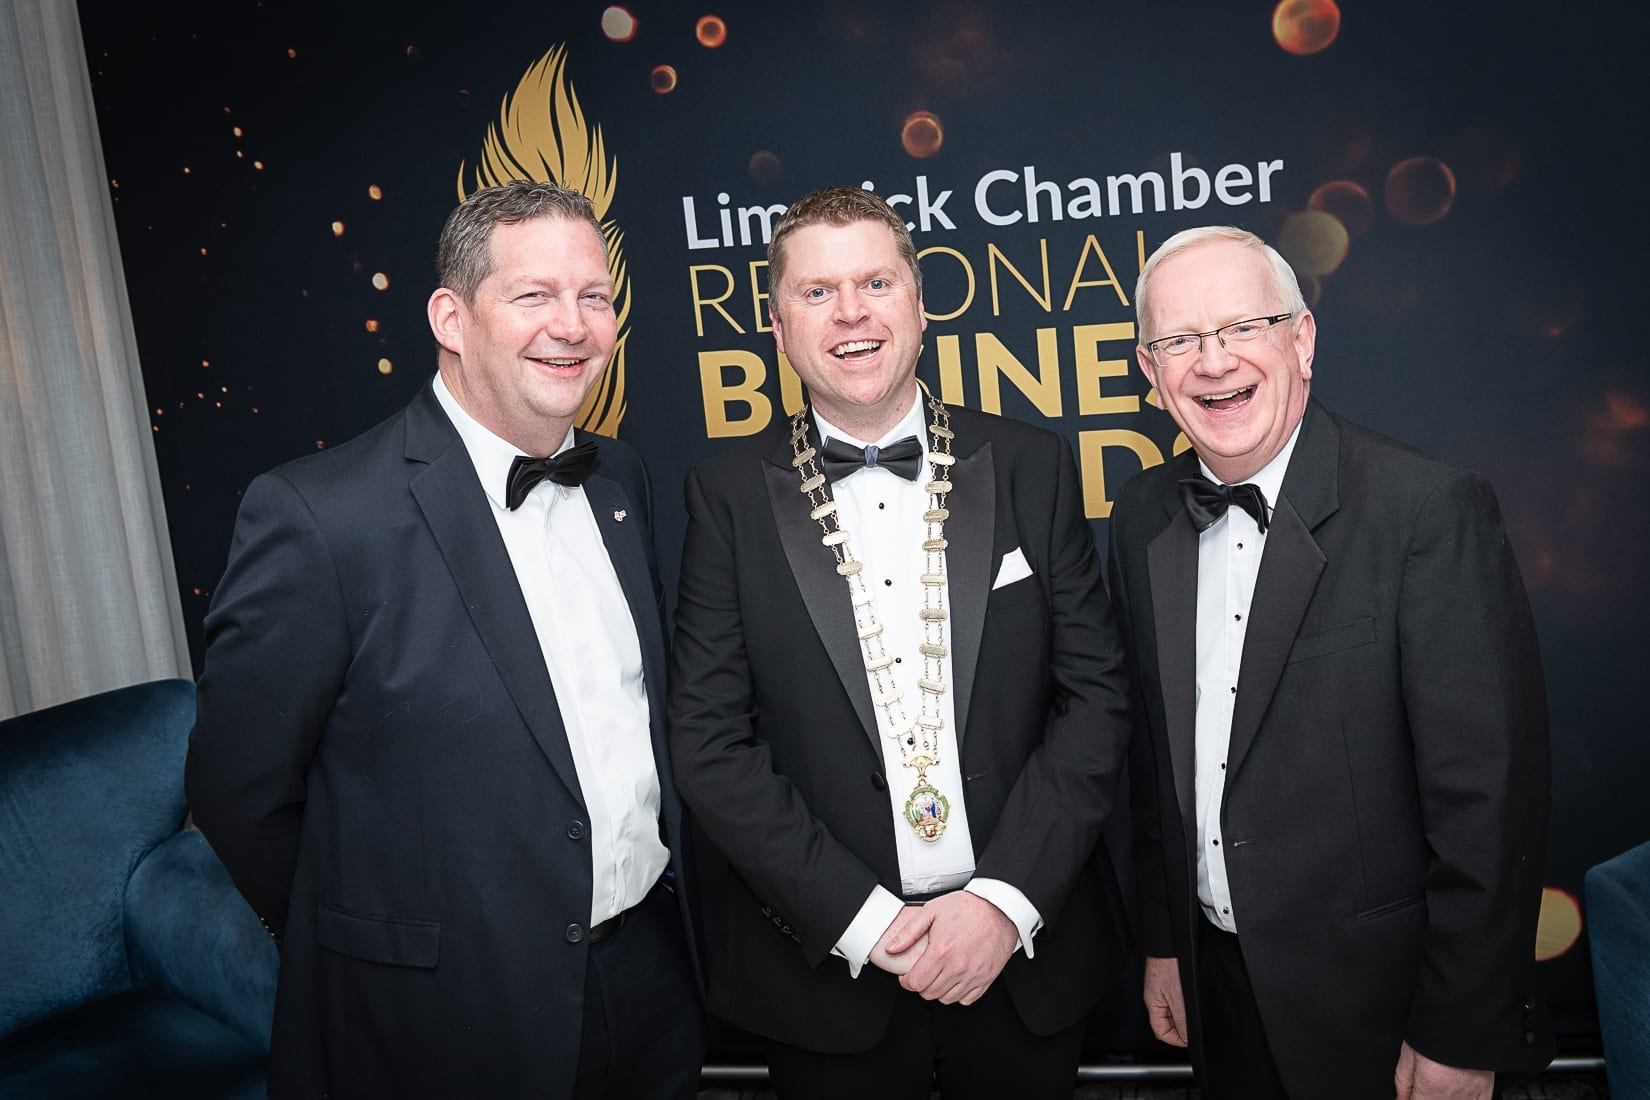 No repro fee-Limerick Chamber President's Dinner and Limerick Chamber Regional Business Awards 2019 which was held in the Strand Hotel on Friday 15th November /  Limerick Institute of Technology Sponsors/  - From Left to Right: Dr Liam Browne  - Vice President LIT, Eoin Ryan - President Limerick Chamber, Professor Vincent Cunnane- President LIT,  Photo credit Shauna Kennedy